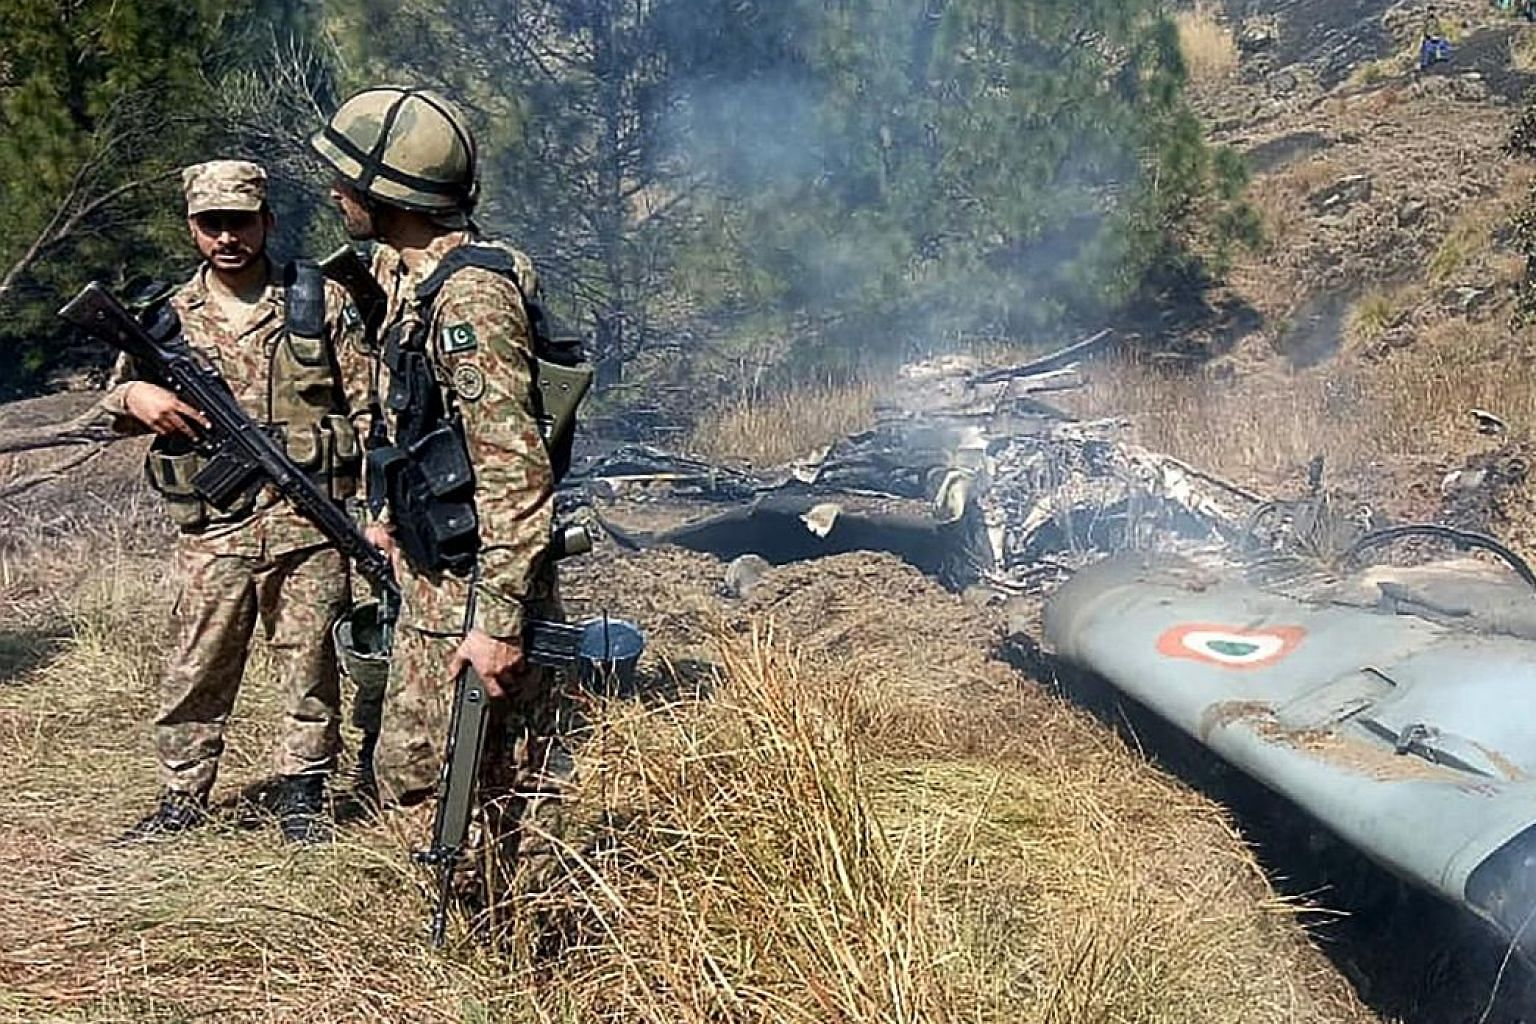 The wreckage of an Indian fighter jet shot down in Pakistan-controlled Kashmir on Feb 27. The writer says that potential crisis situations like this present an opportunity for Asean to cement its centrality in regional affairs by, for example, exerci